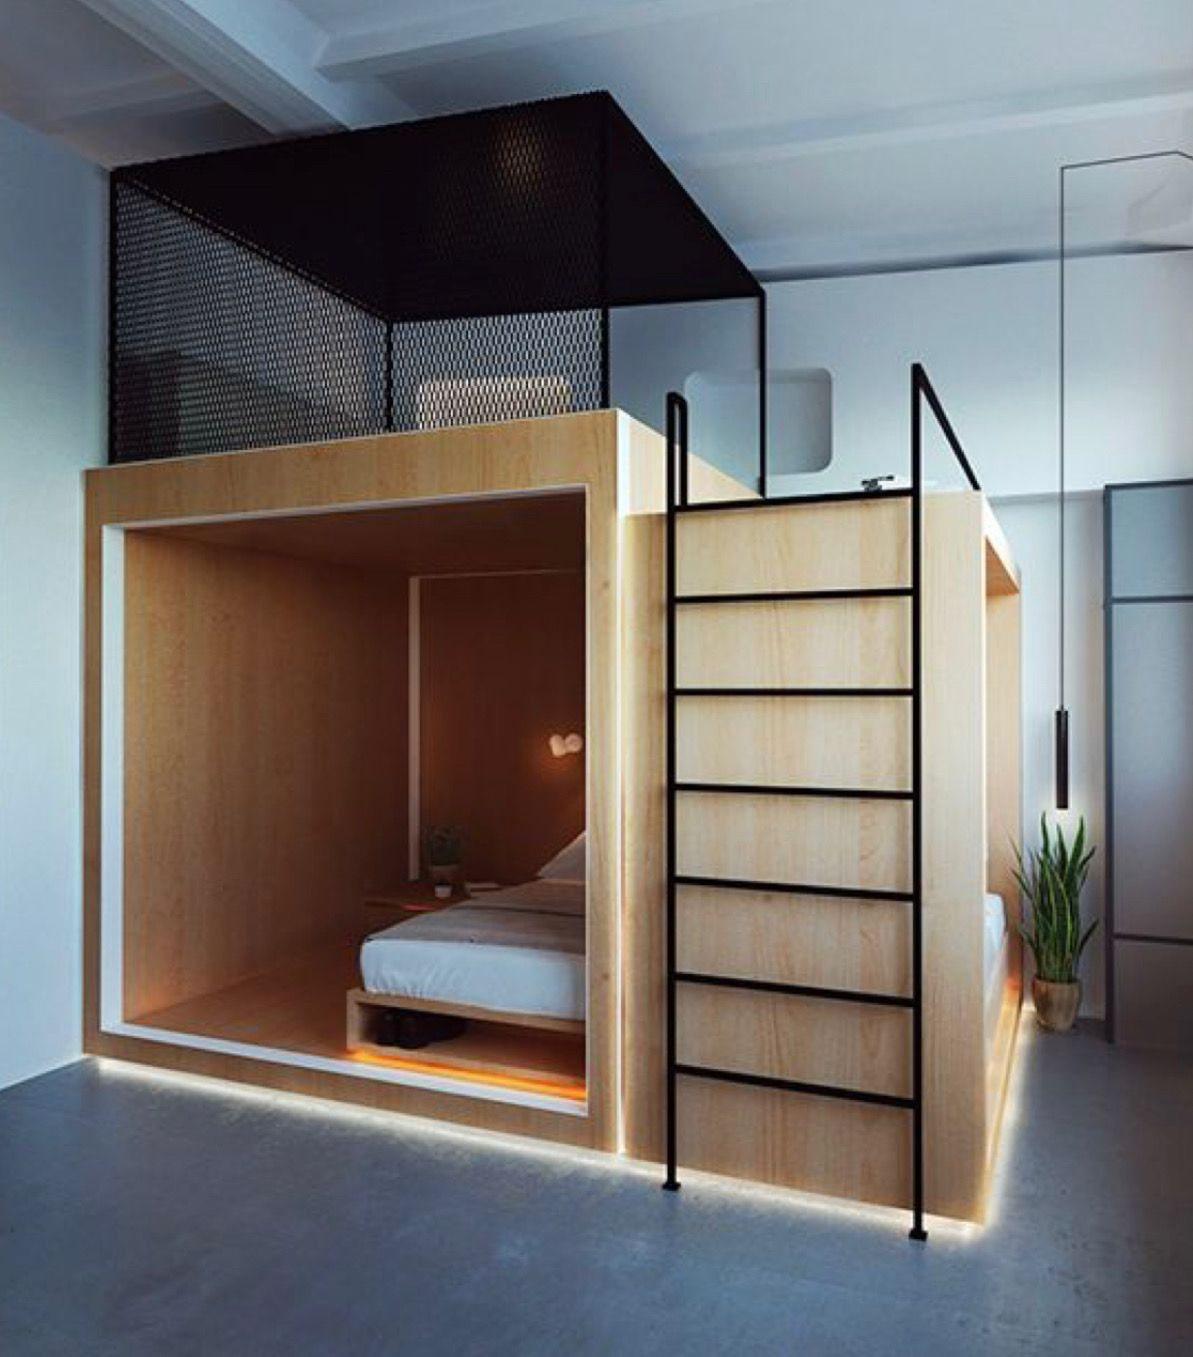 Pin By R O O S T On Roost Beds Hostels Design Tiny House